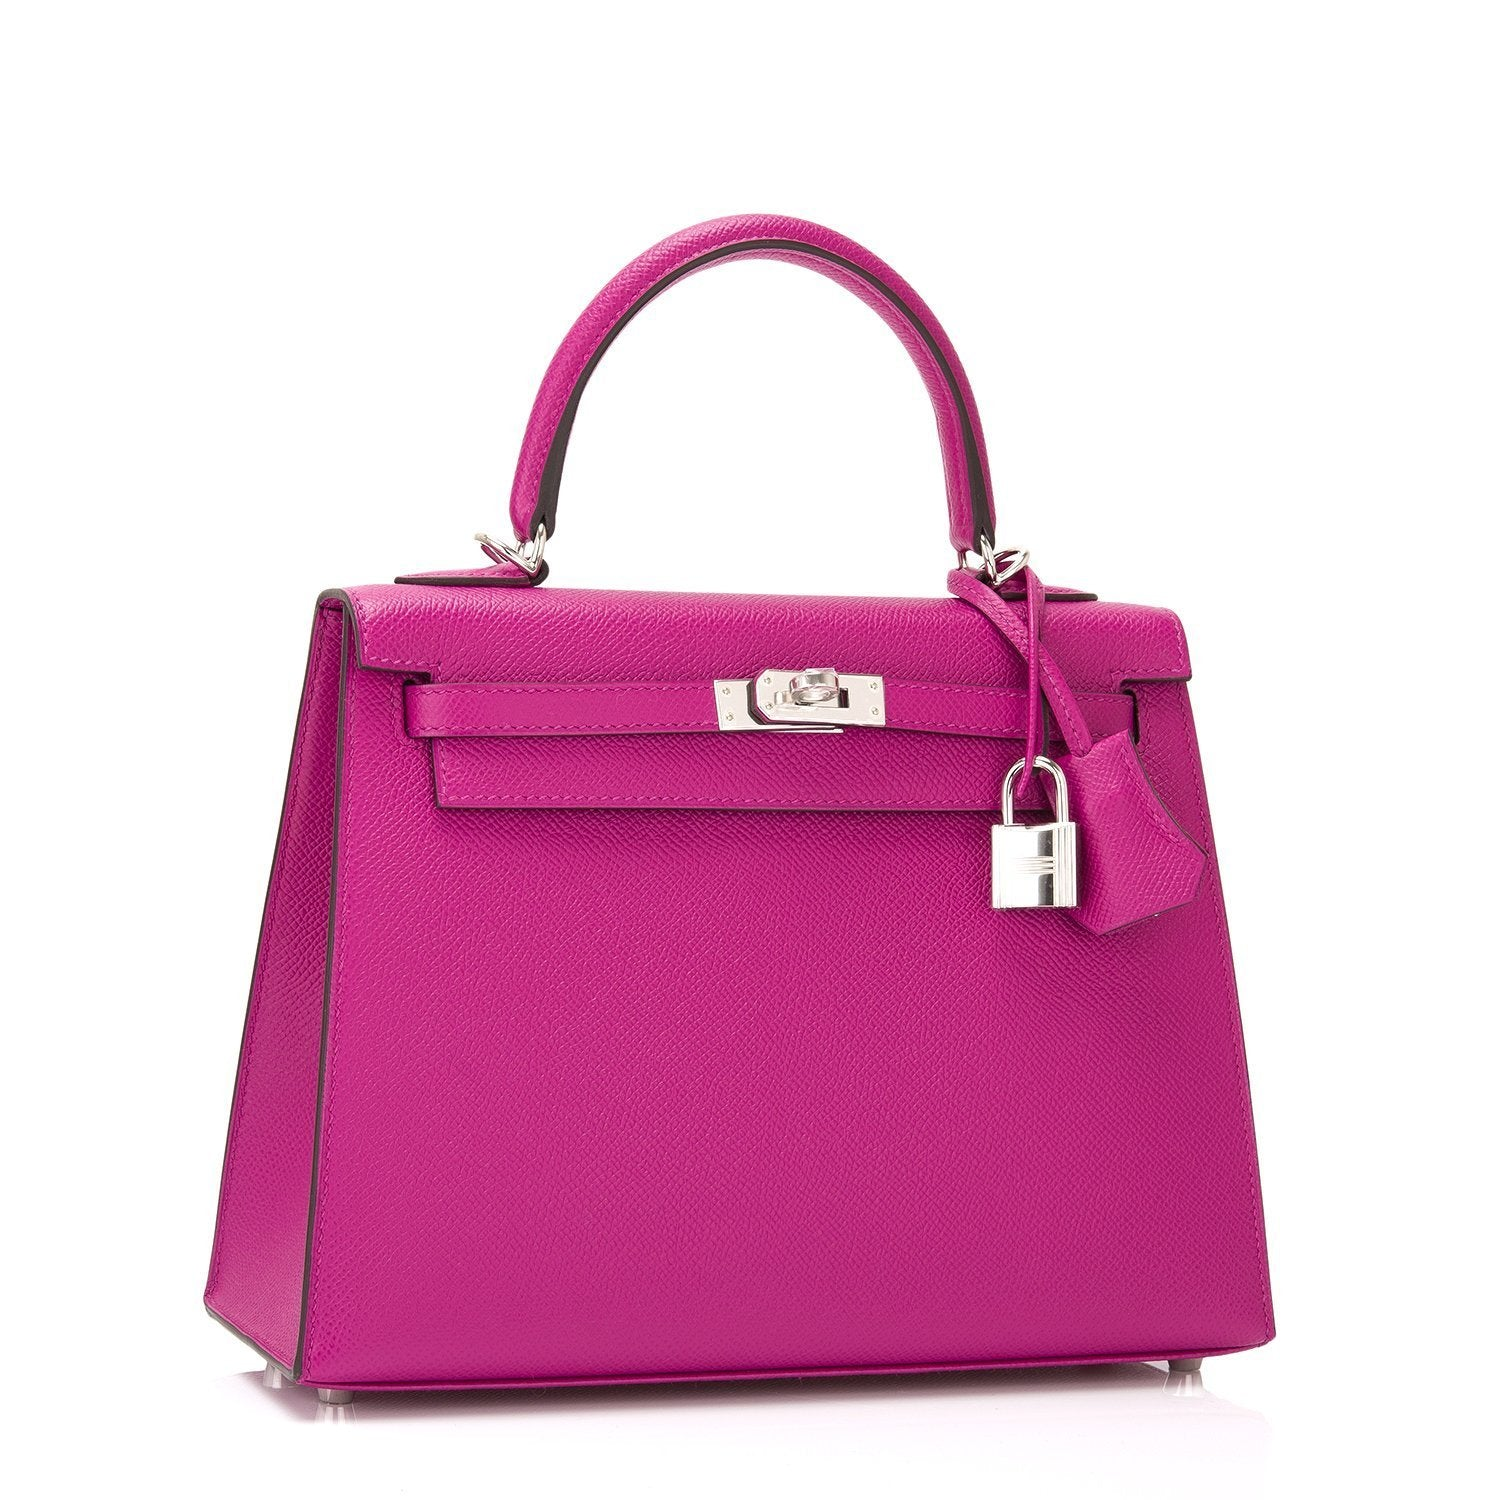 ab09ec60fcf8 Hermes Rose Pourpre Epsom Sellier Kelly 25cm PHW – Madison Avenue Couture